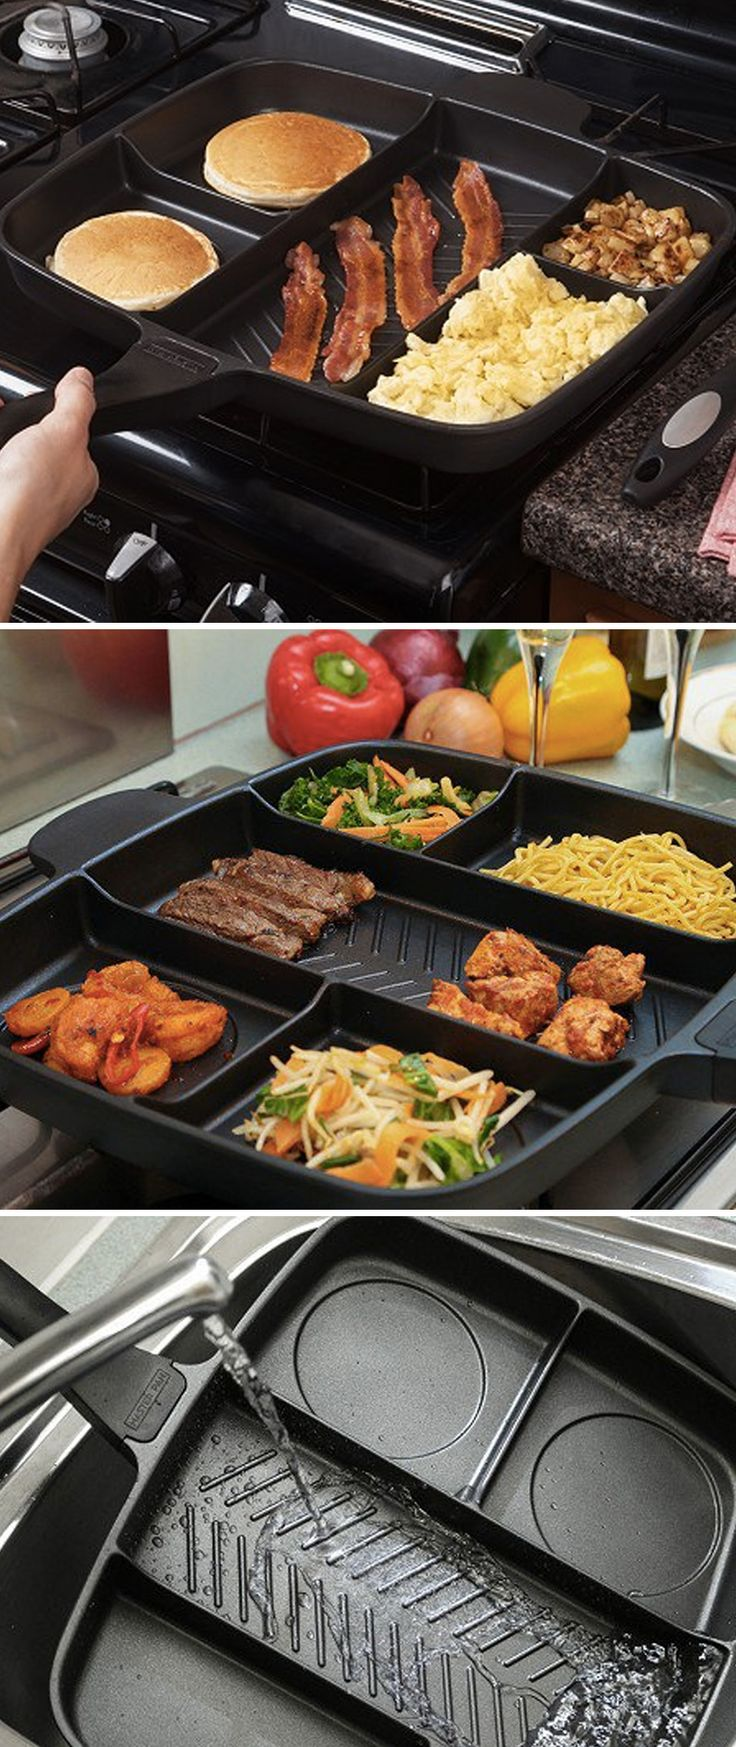 Must find!!!! The MasterPan is a sectioned frying pan that lets you cook five different foods at once.